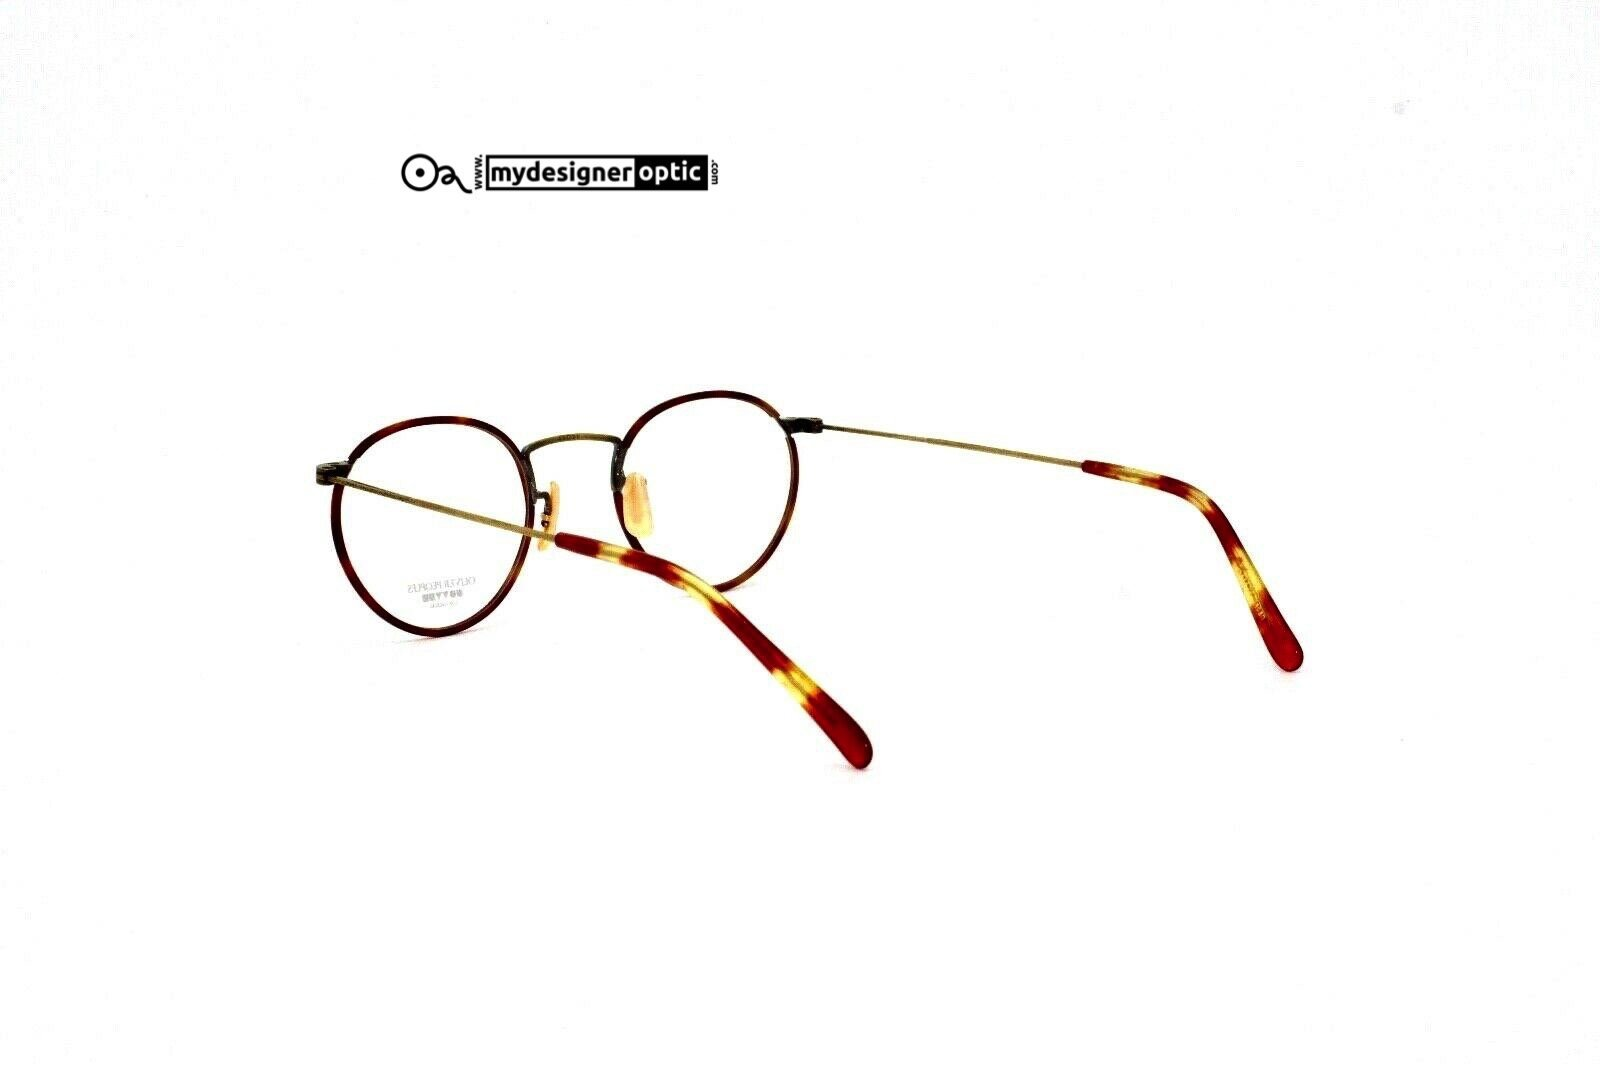 Oliver peoples Eyewear Frame OP-70 140 Made in Japan - Mydesigneroptic